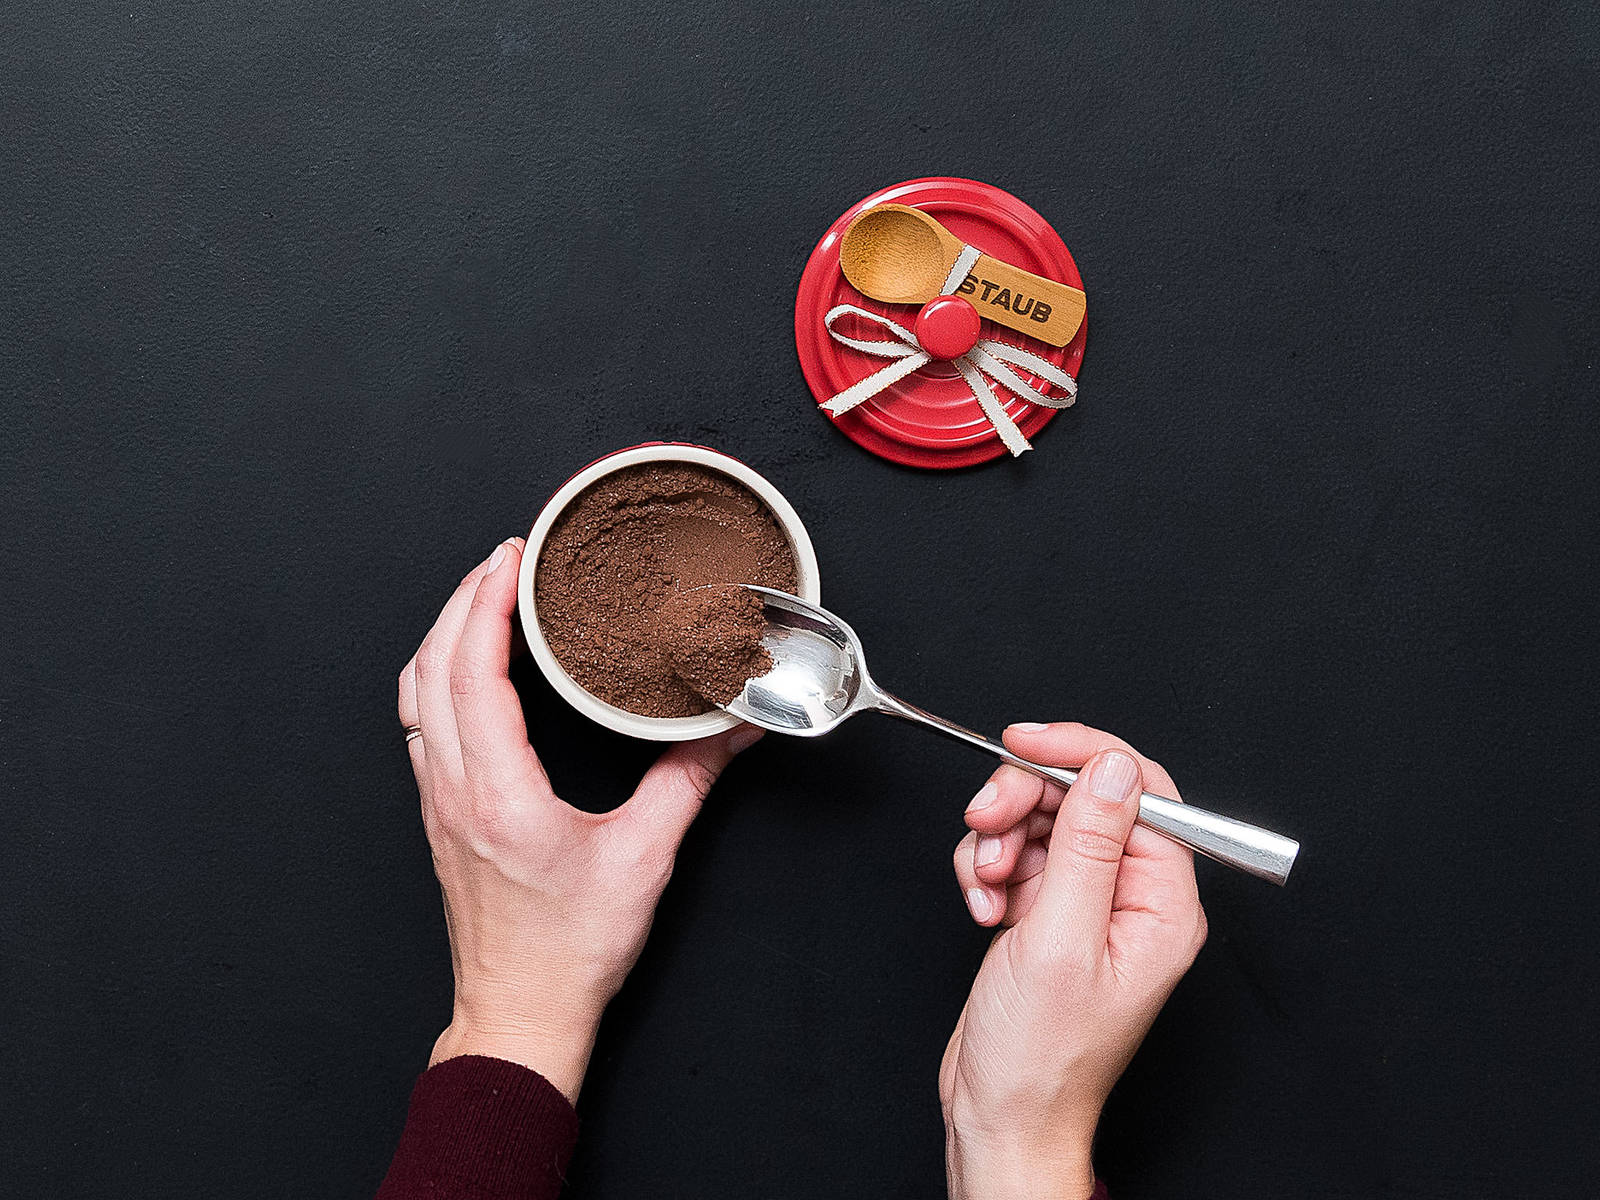 Store hot chocolate mix in an airtight container. Serve approx. 3 tbsp cocoa mix per 1 cup/230 ml milk. Enjoy!